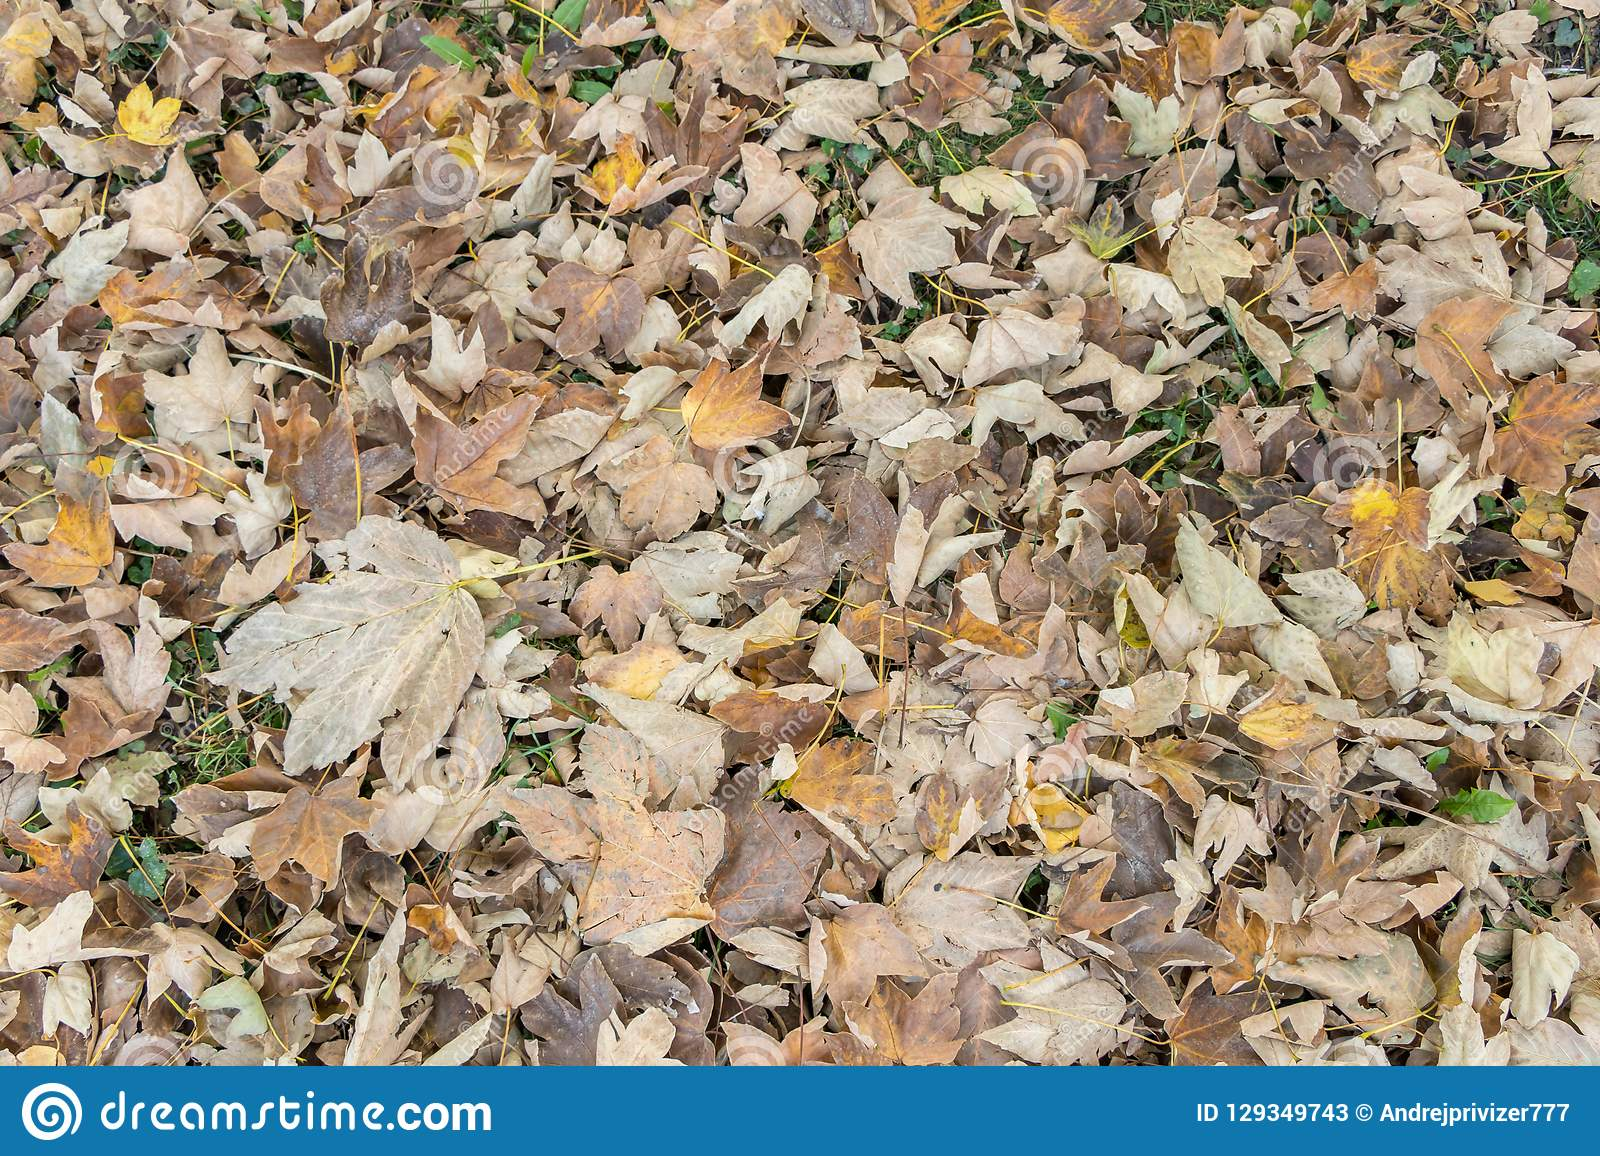 Fall leaves and the phenomenon of changing autumn colors